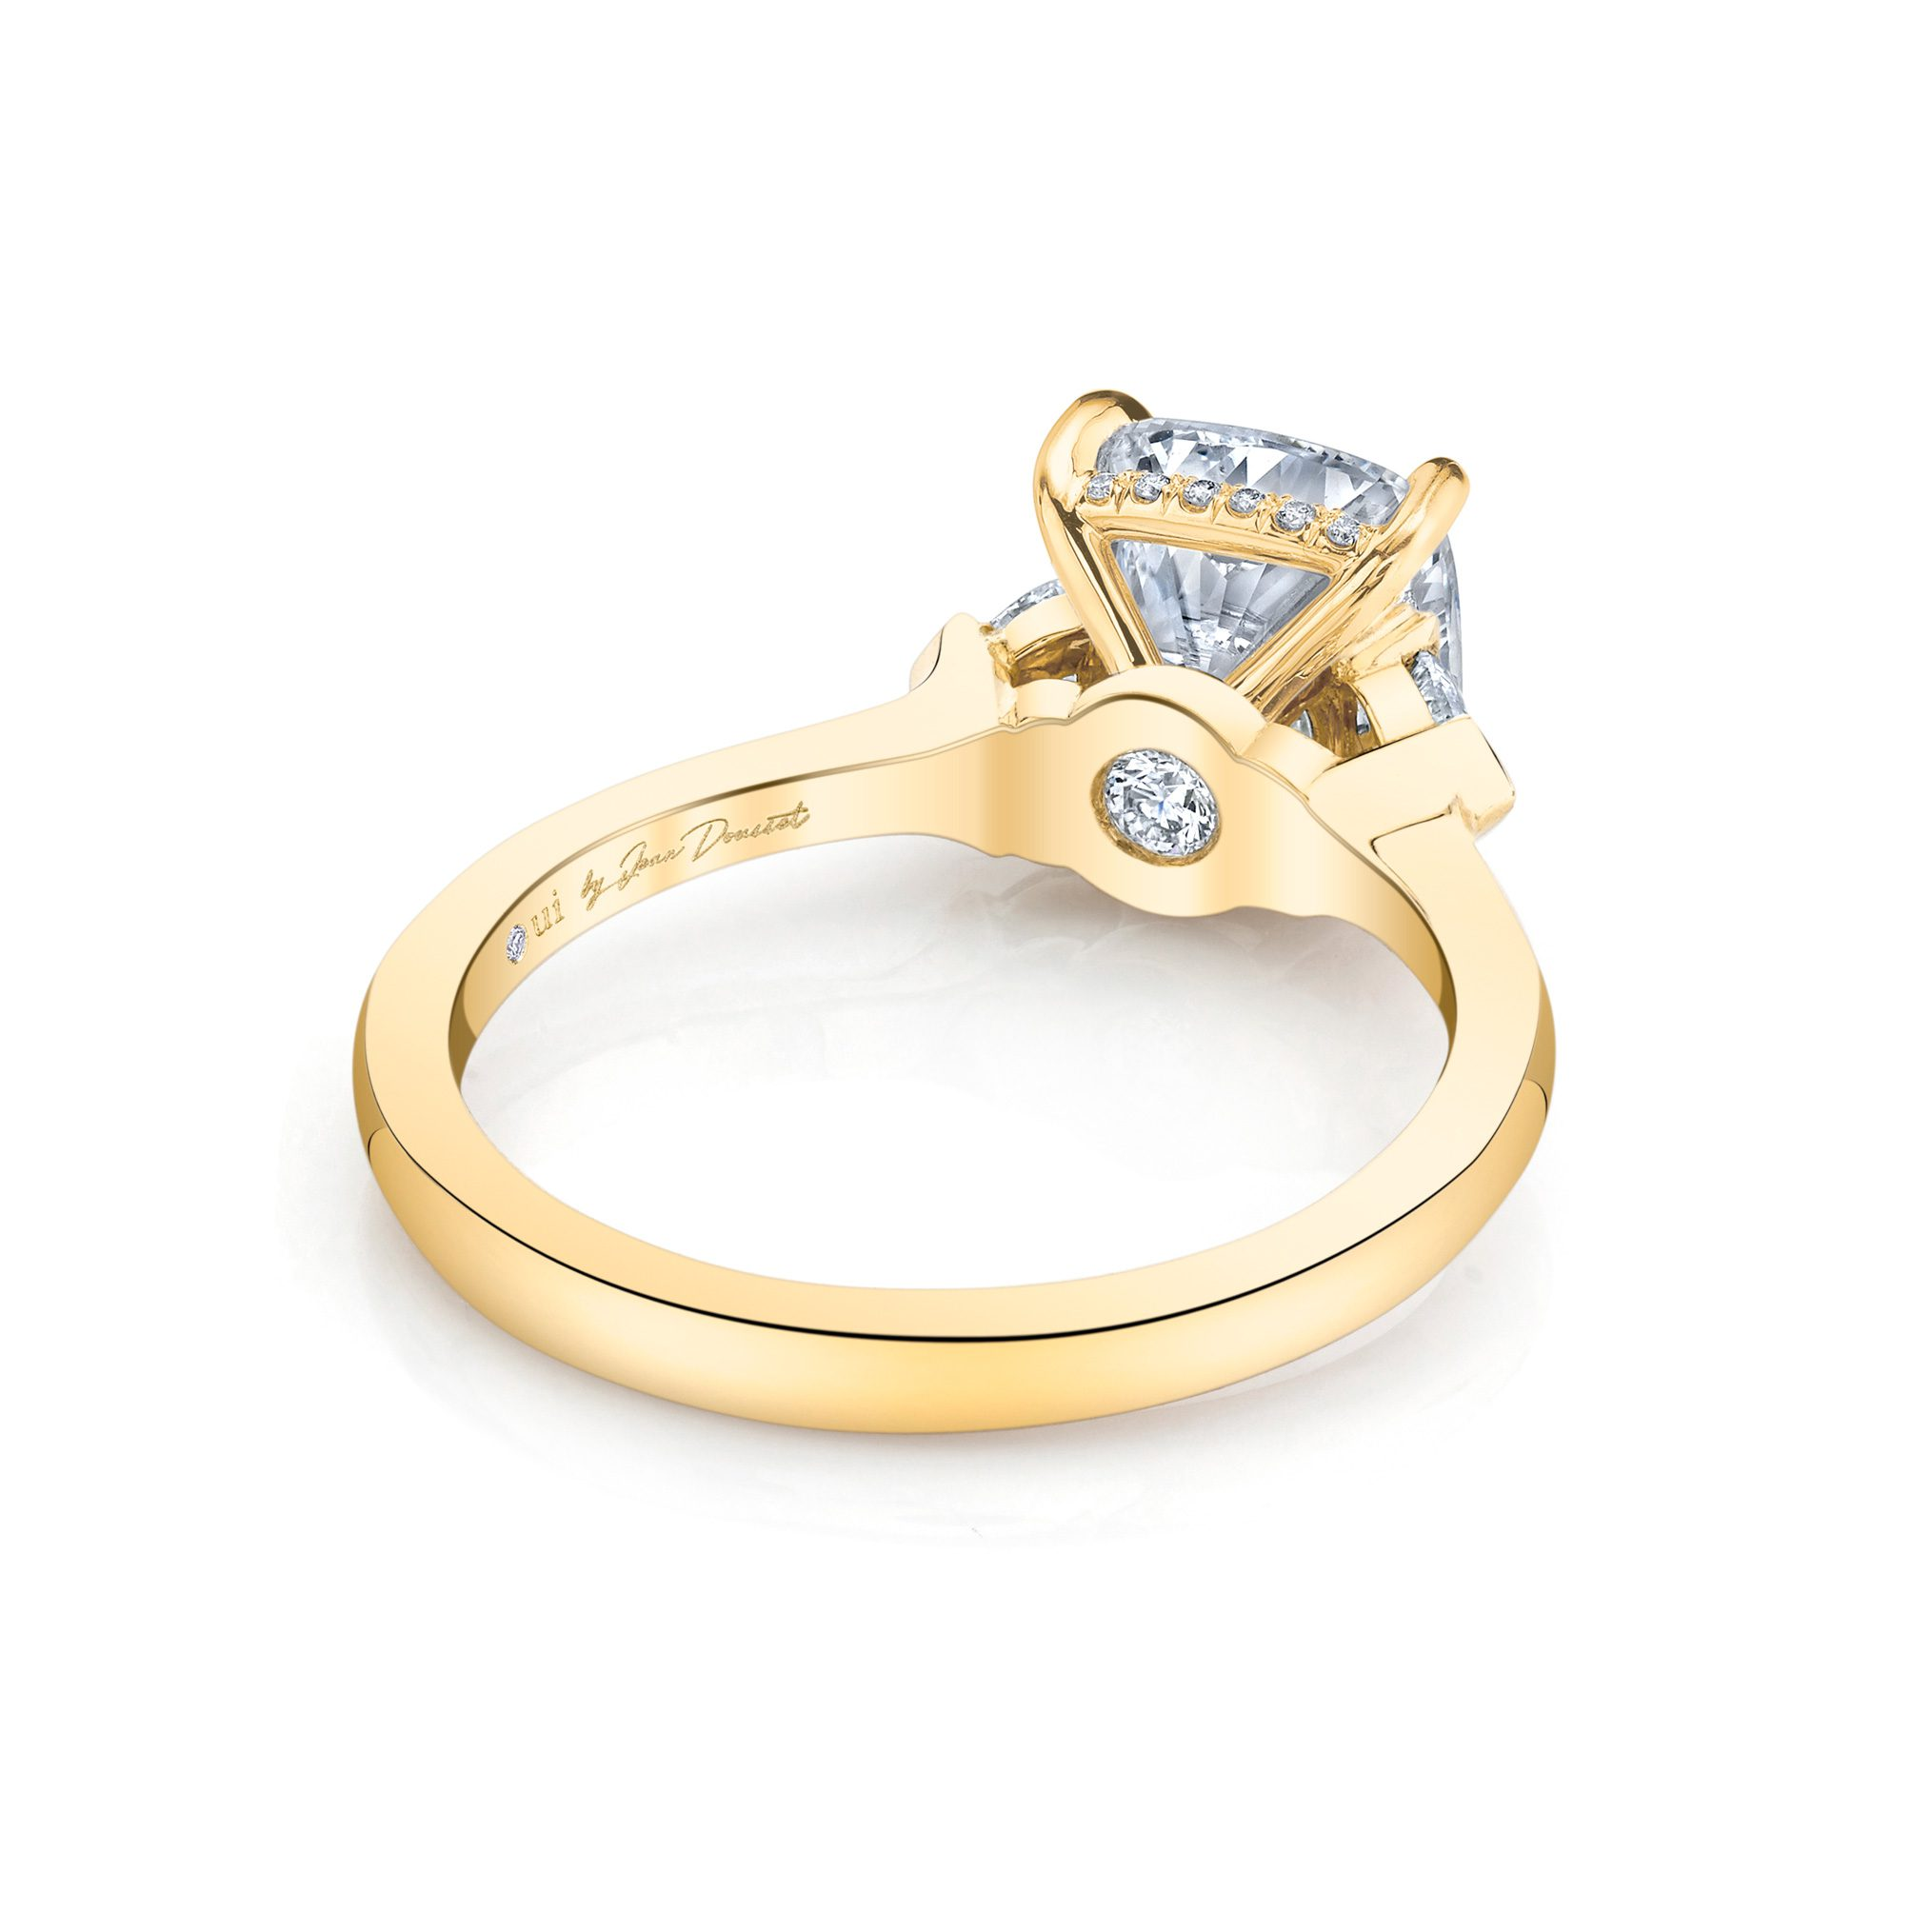 Claire Cushion Three Stone Engagement Ring with heart-shaped diamond side stones in 18k Yellow Gold Back View by Oui by Jean Dousset